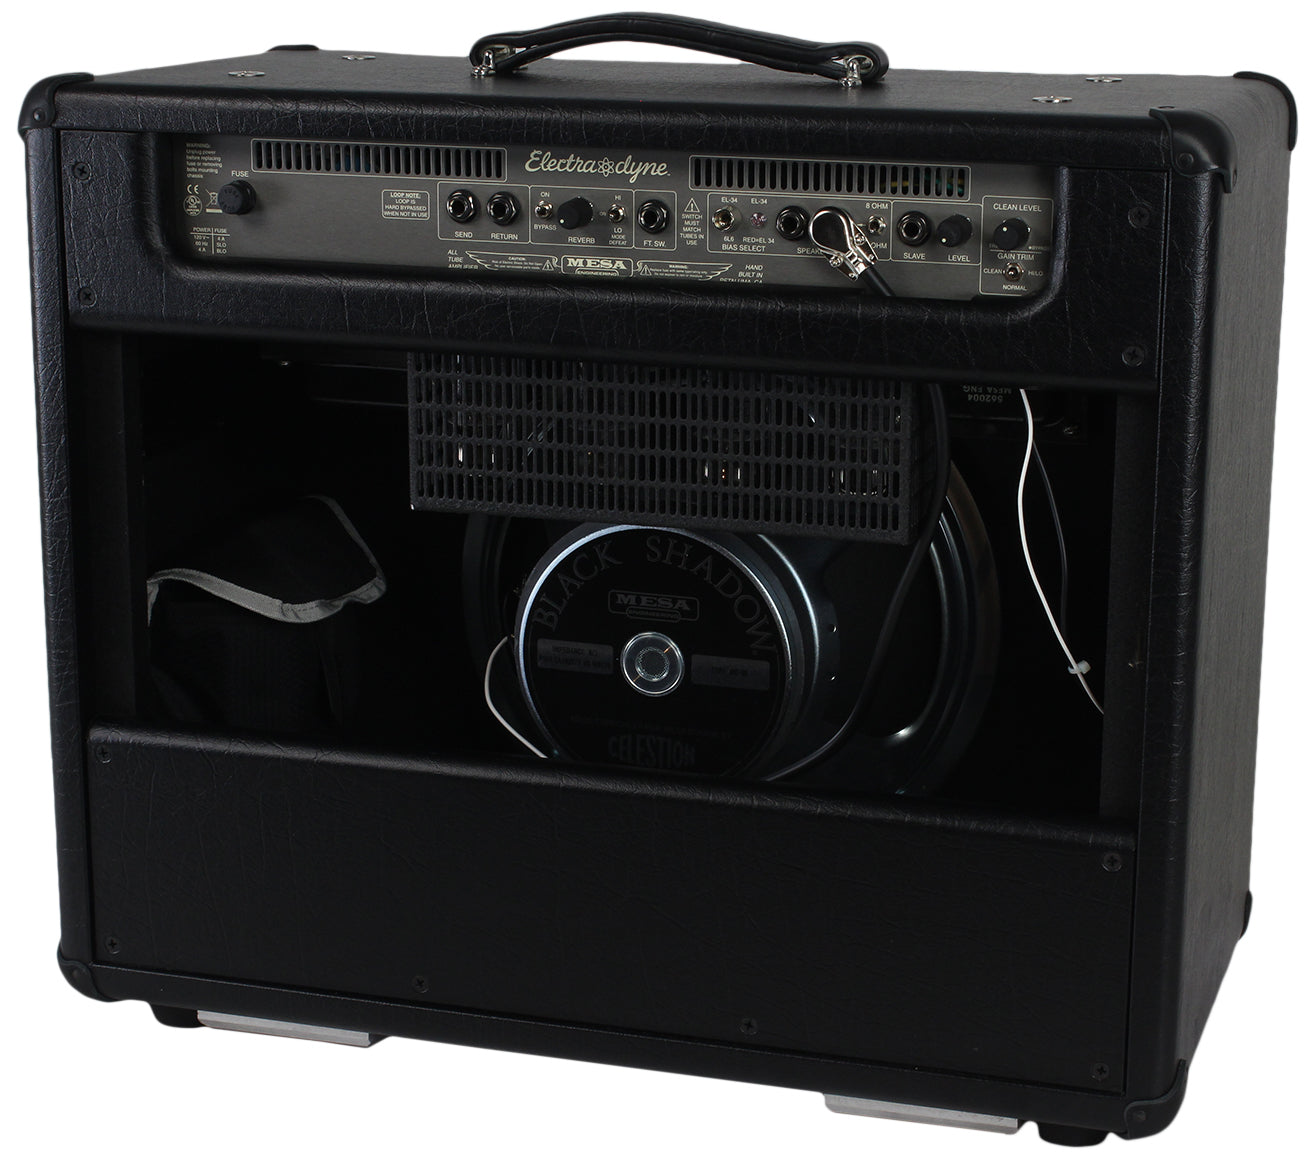 mesa boogie electra dyne 1x12 combo amp in black humbucker music. Black Bedroom Furniture Sets. Home Design Ideas